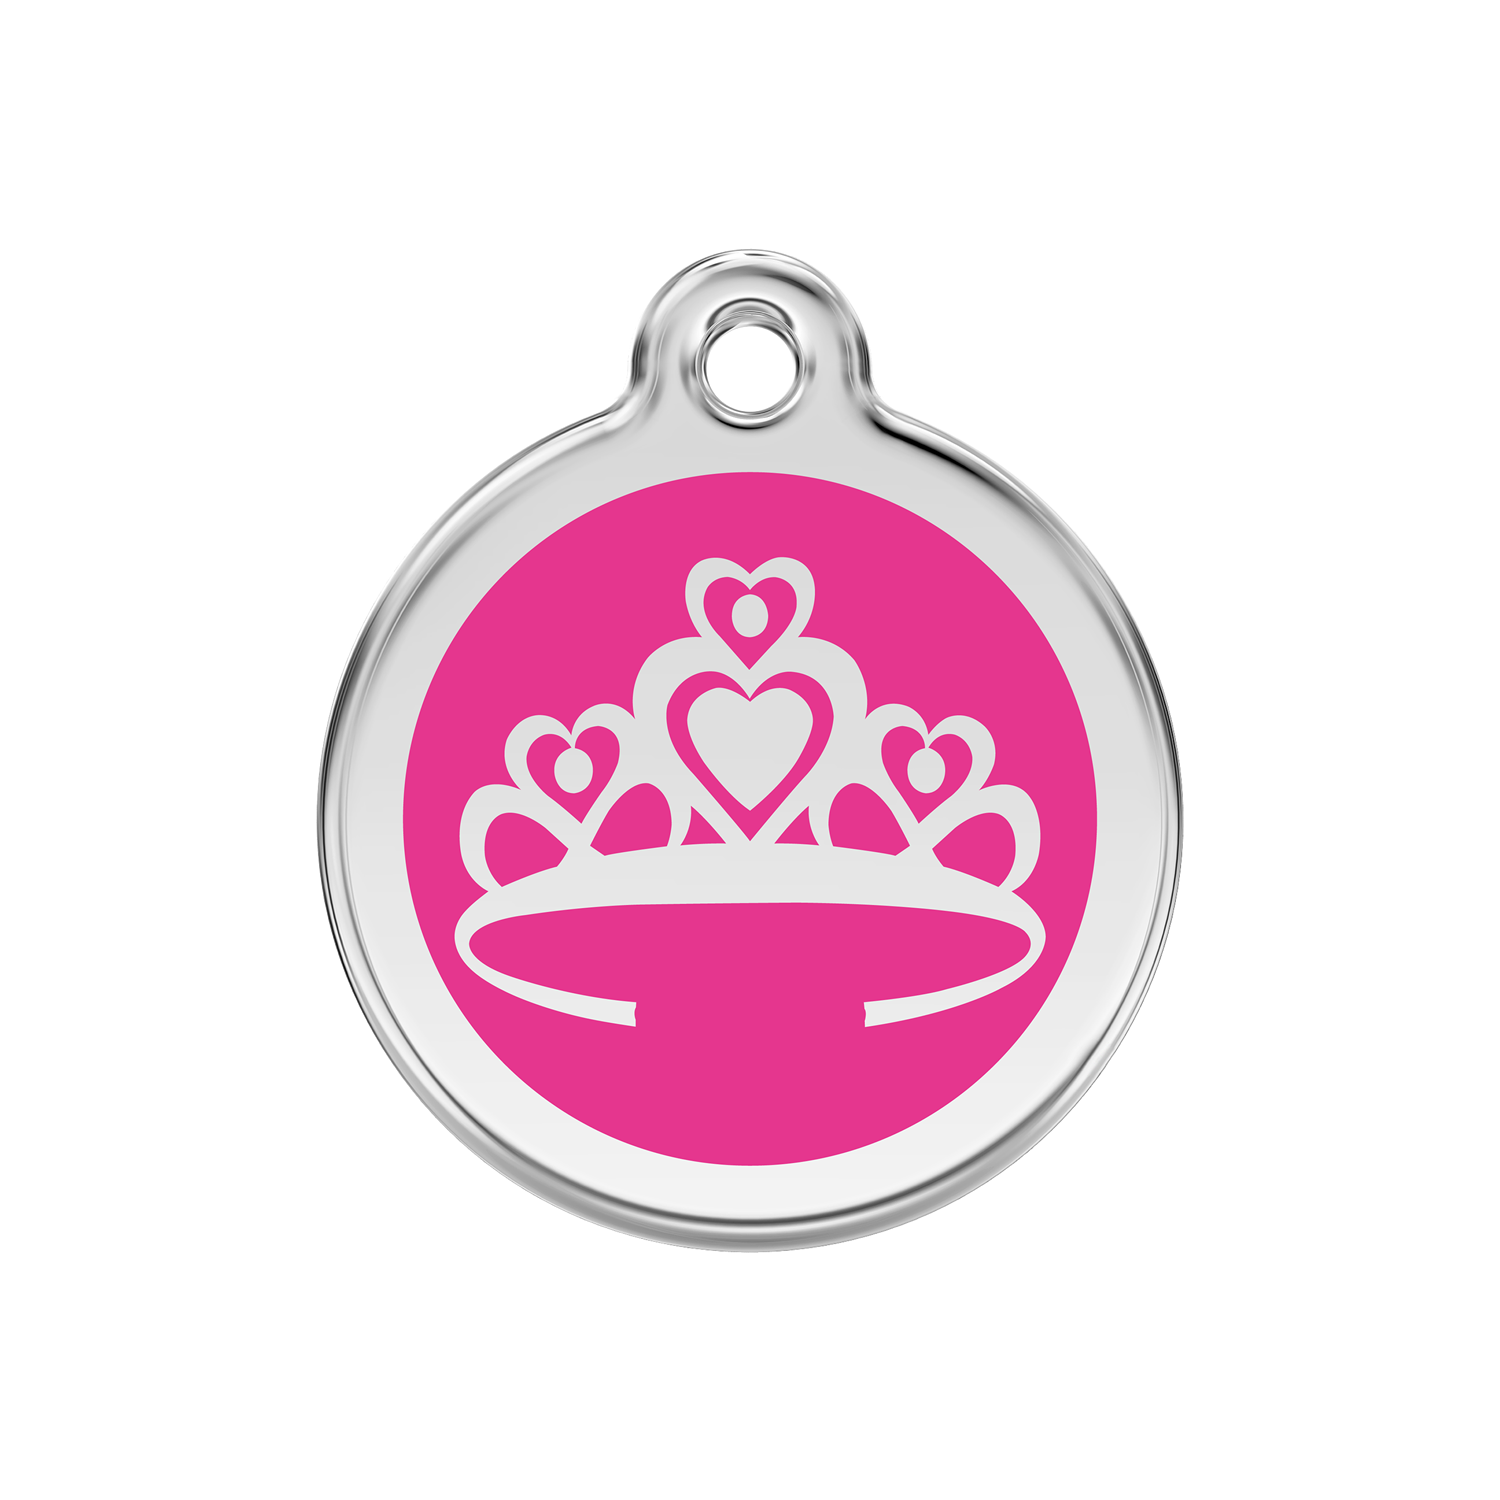 Hot Pink Crown Medium Enamel & Stainless Steel Tag>